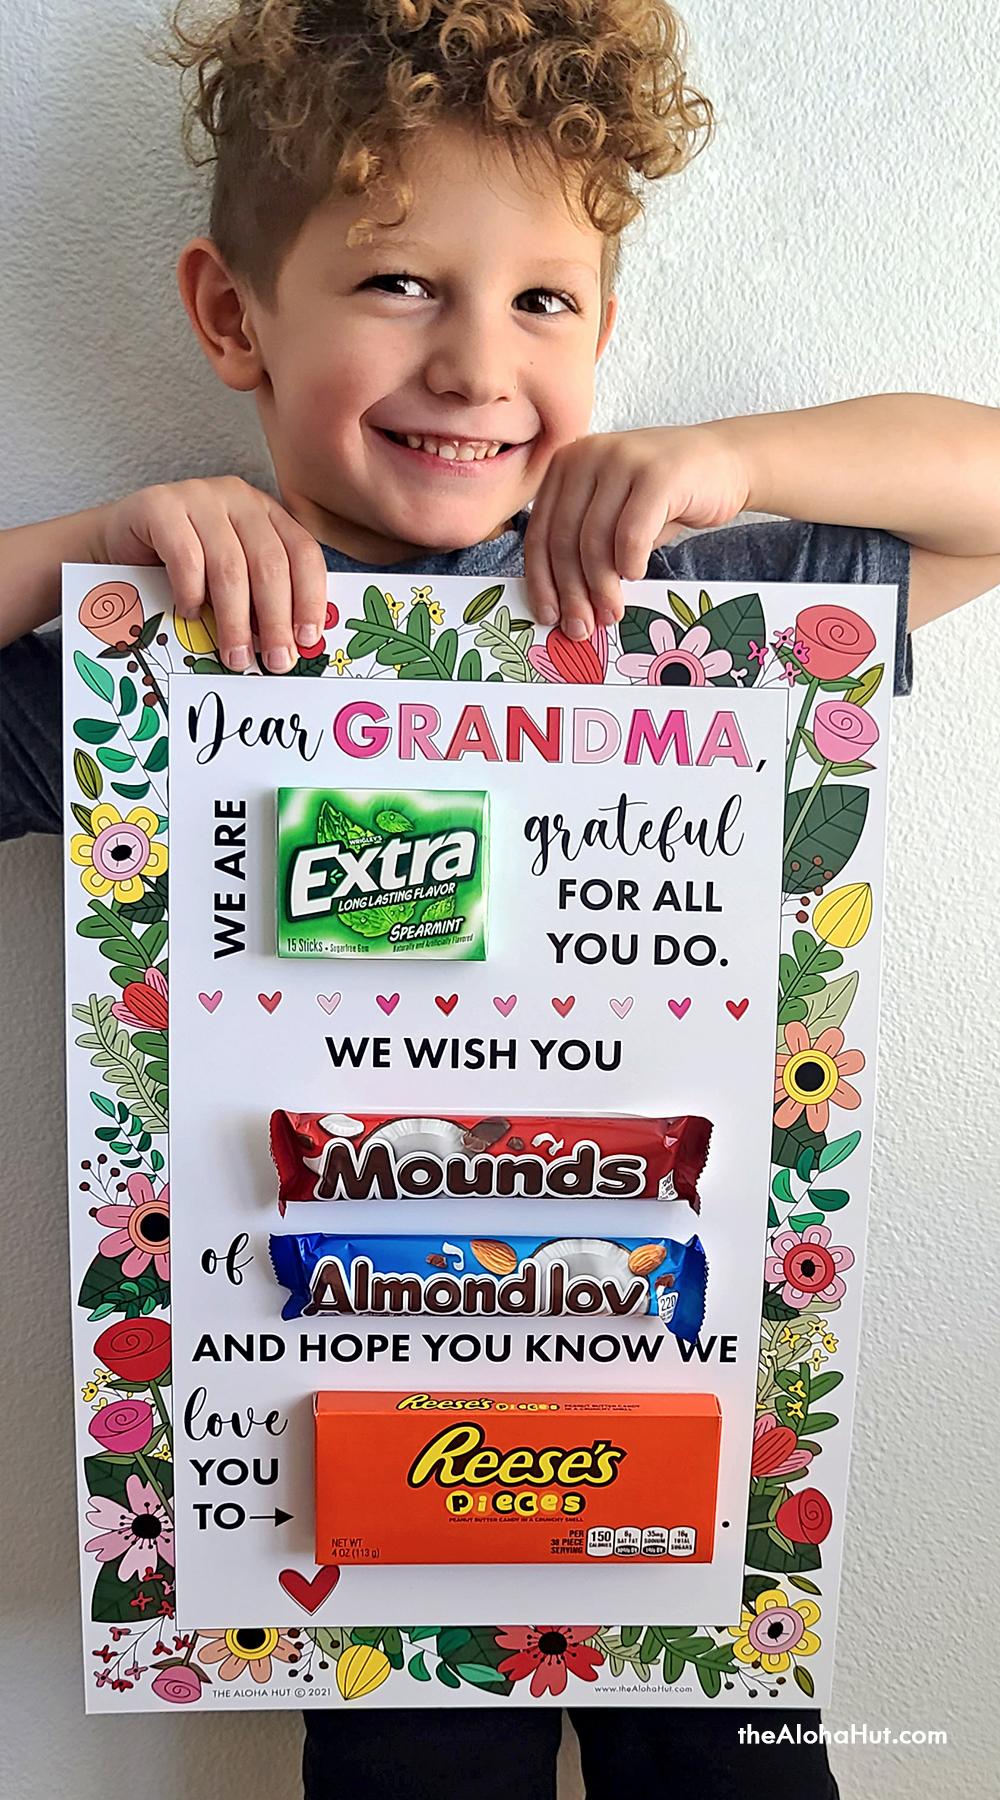 Mother's Day Card candy-gram by the Aloha Hut